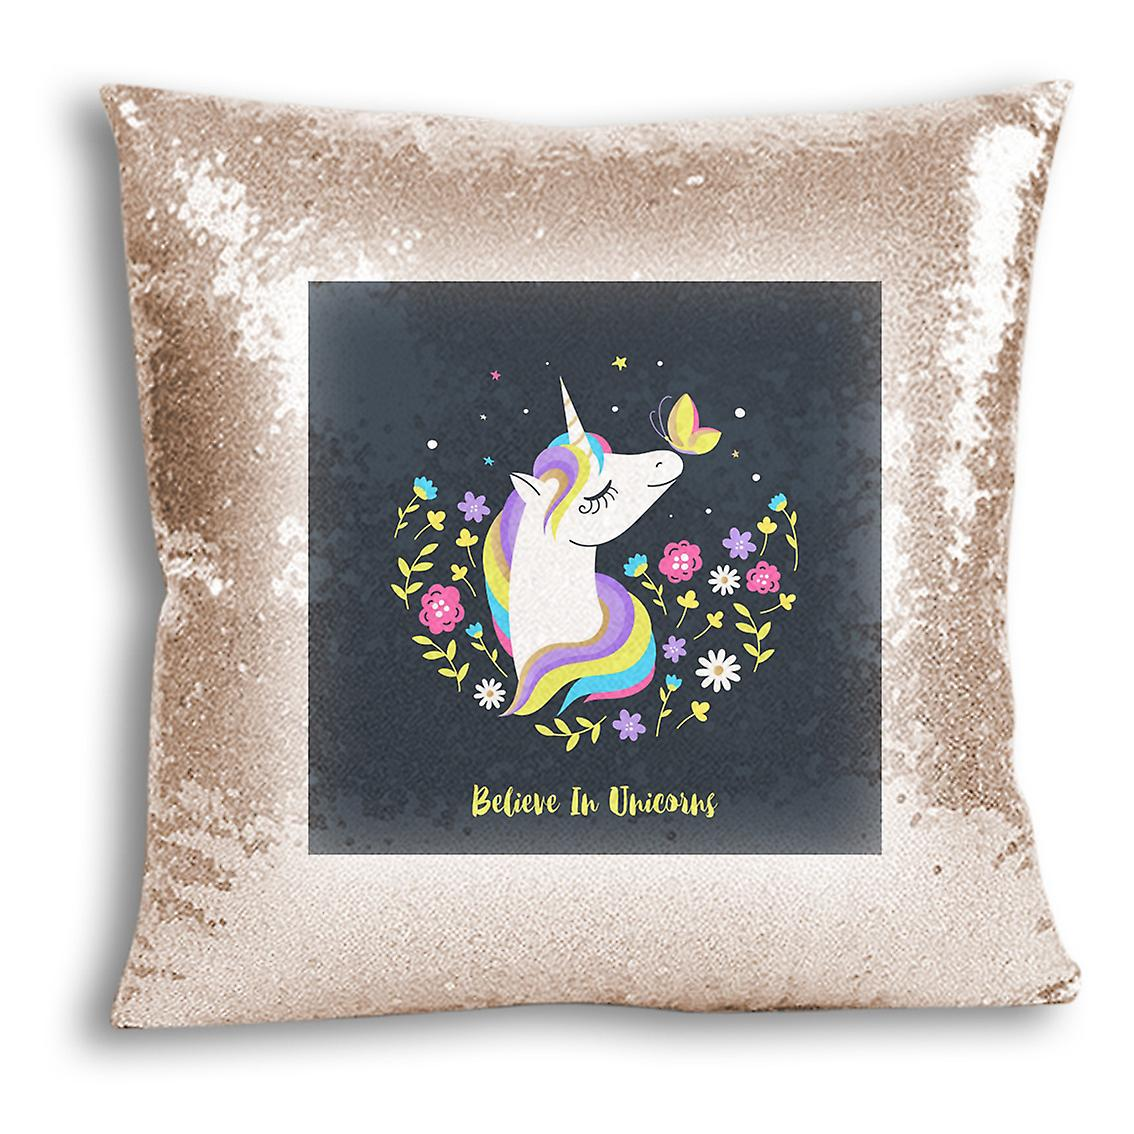 Design Home Inserted Decor Printed For 14 CushionPillow I Champagne tronixsUnicorn With Sequin Cover kiXlOuwPZT